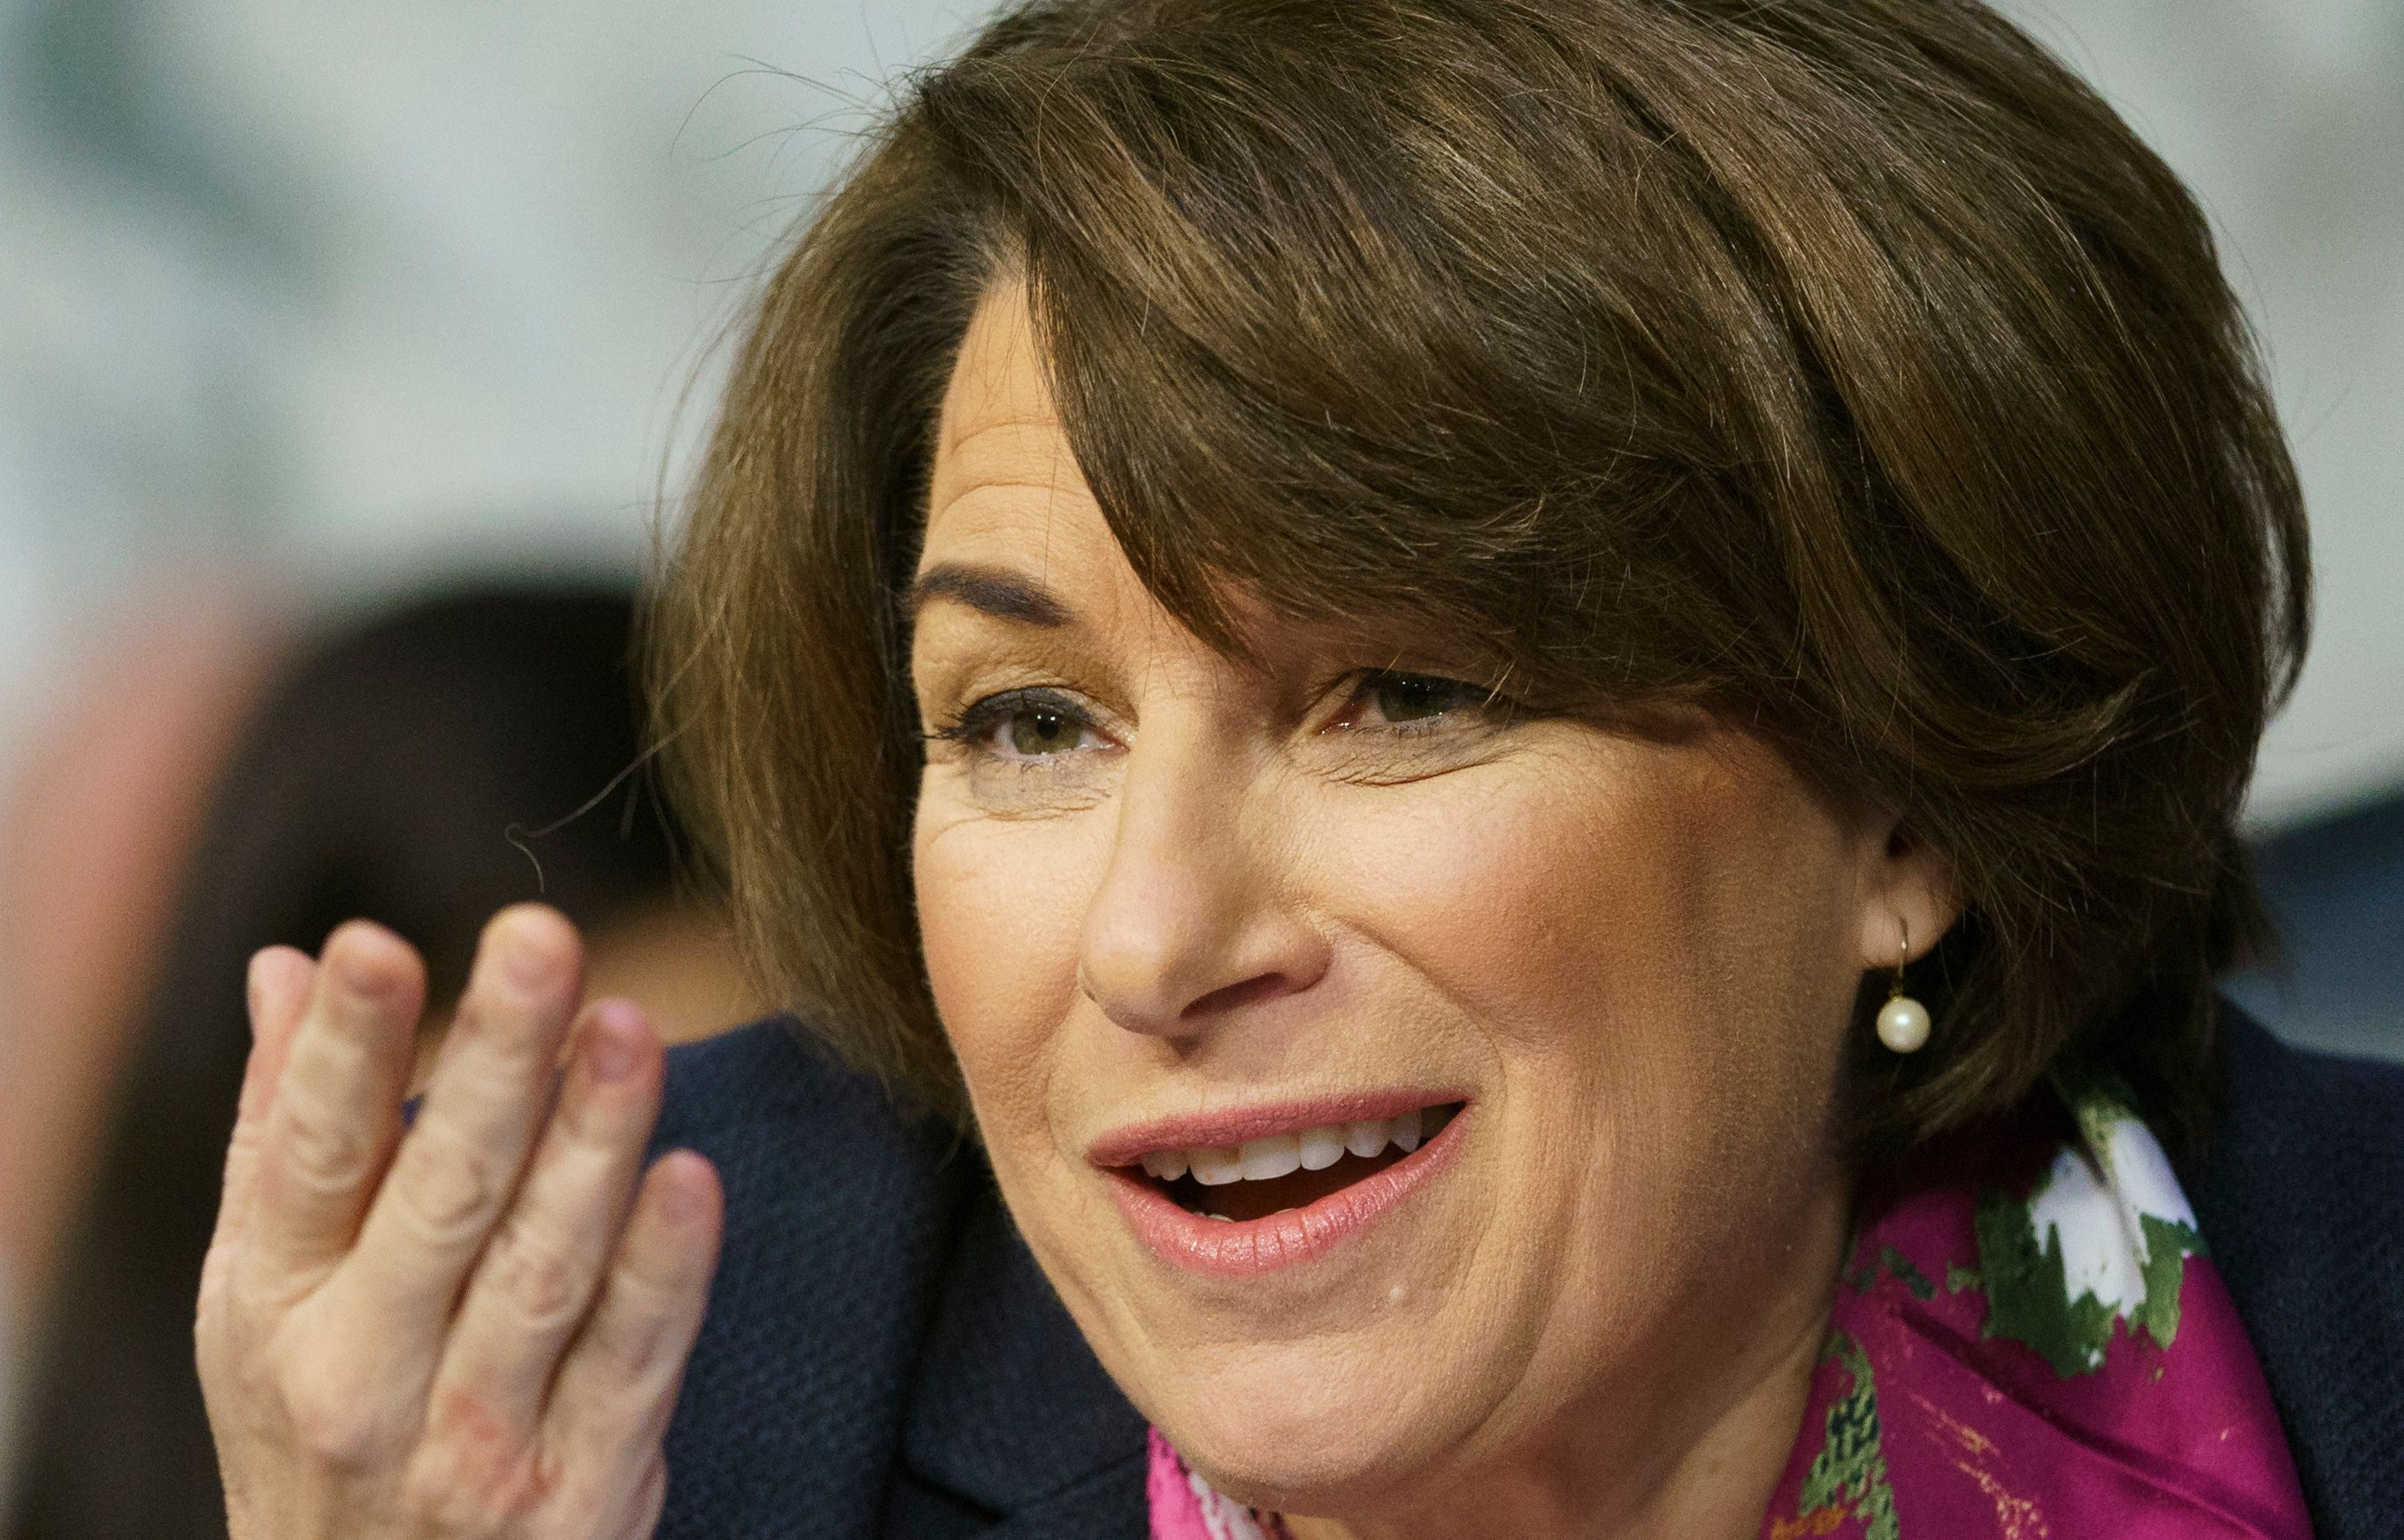 Some former staffers of Sen. Amy Klobuchar describe the lawmaker as habitually demeaning and prone to bursts of cruelty